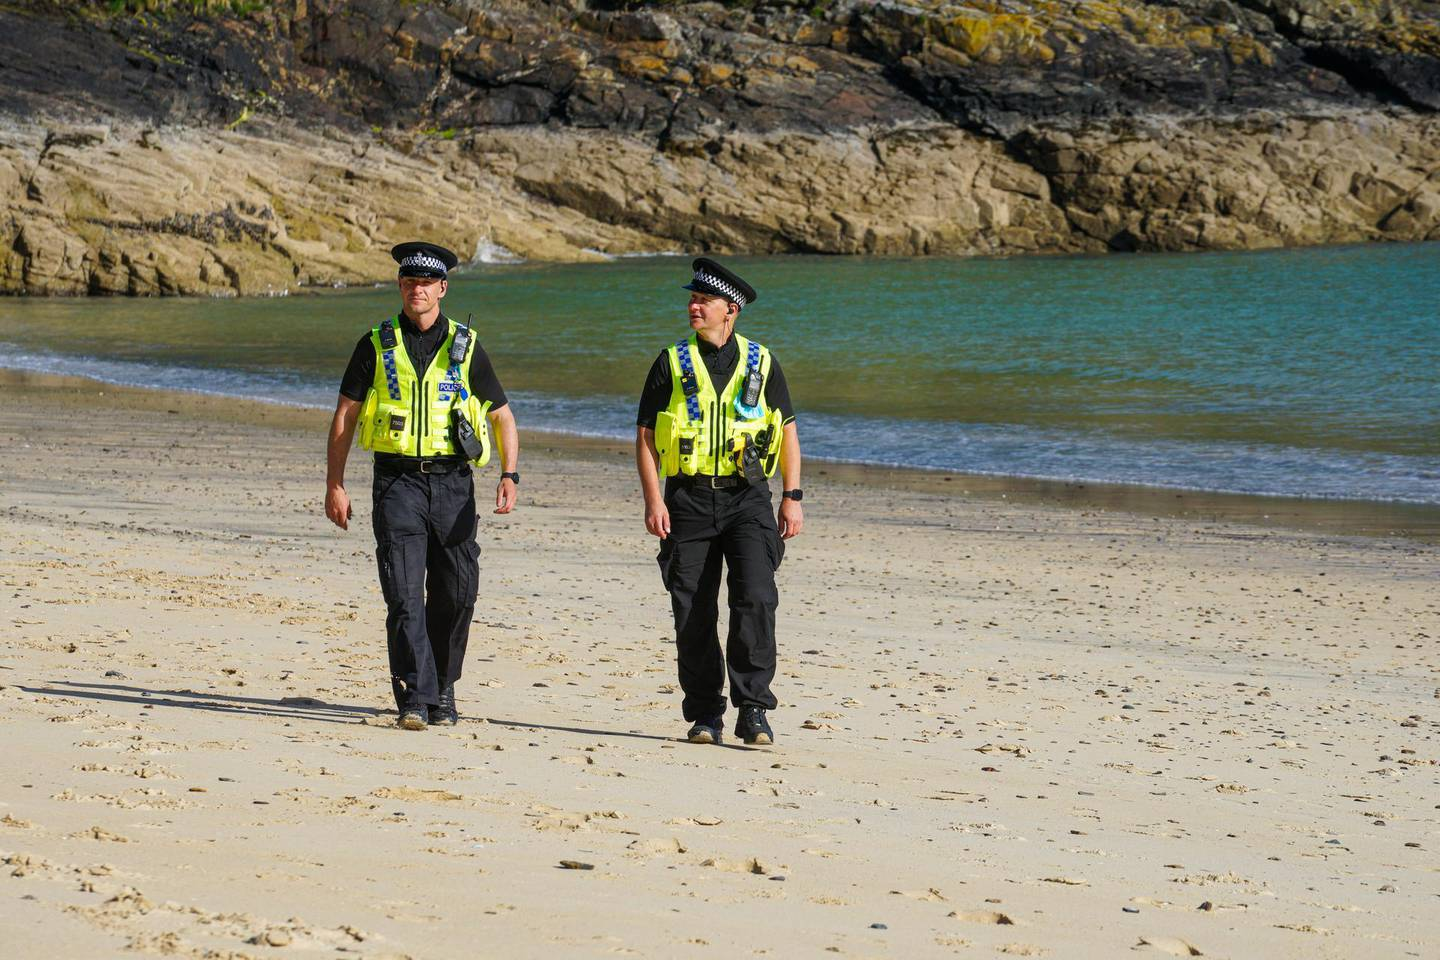 CARBIS BAY, CORNWALL - JUNE 03: Police officers patrol on the beach in front of the Carbis Bay Hotel, host venue for the G7 Summit conferences, on June 03, 2021 in Carbis Bay, Cornwall. On June 11, Prime Minister Boris Johnson will host the Group of Seven leaders at a three-day summit in Cornwall, as the wealthiest nations look to chart a course for recovery from the global pandemic.  (Photo by Hugh Hastings/Getty Images)